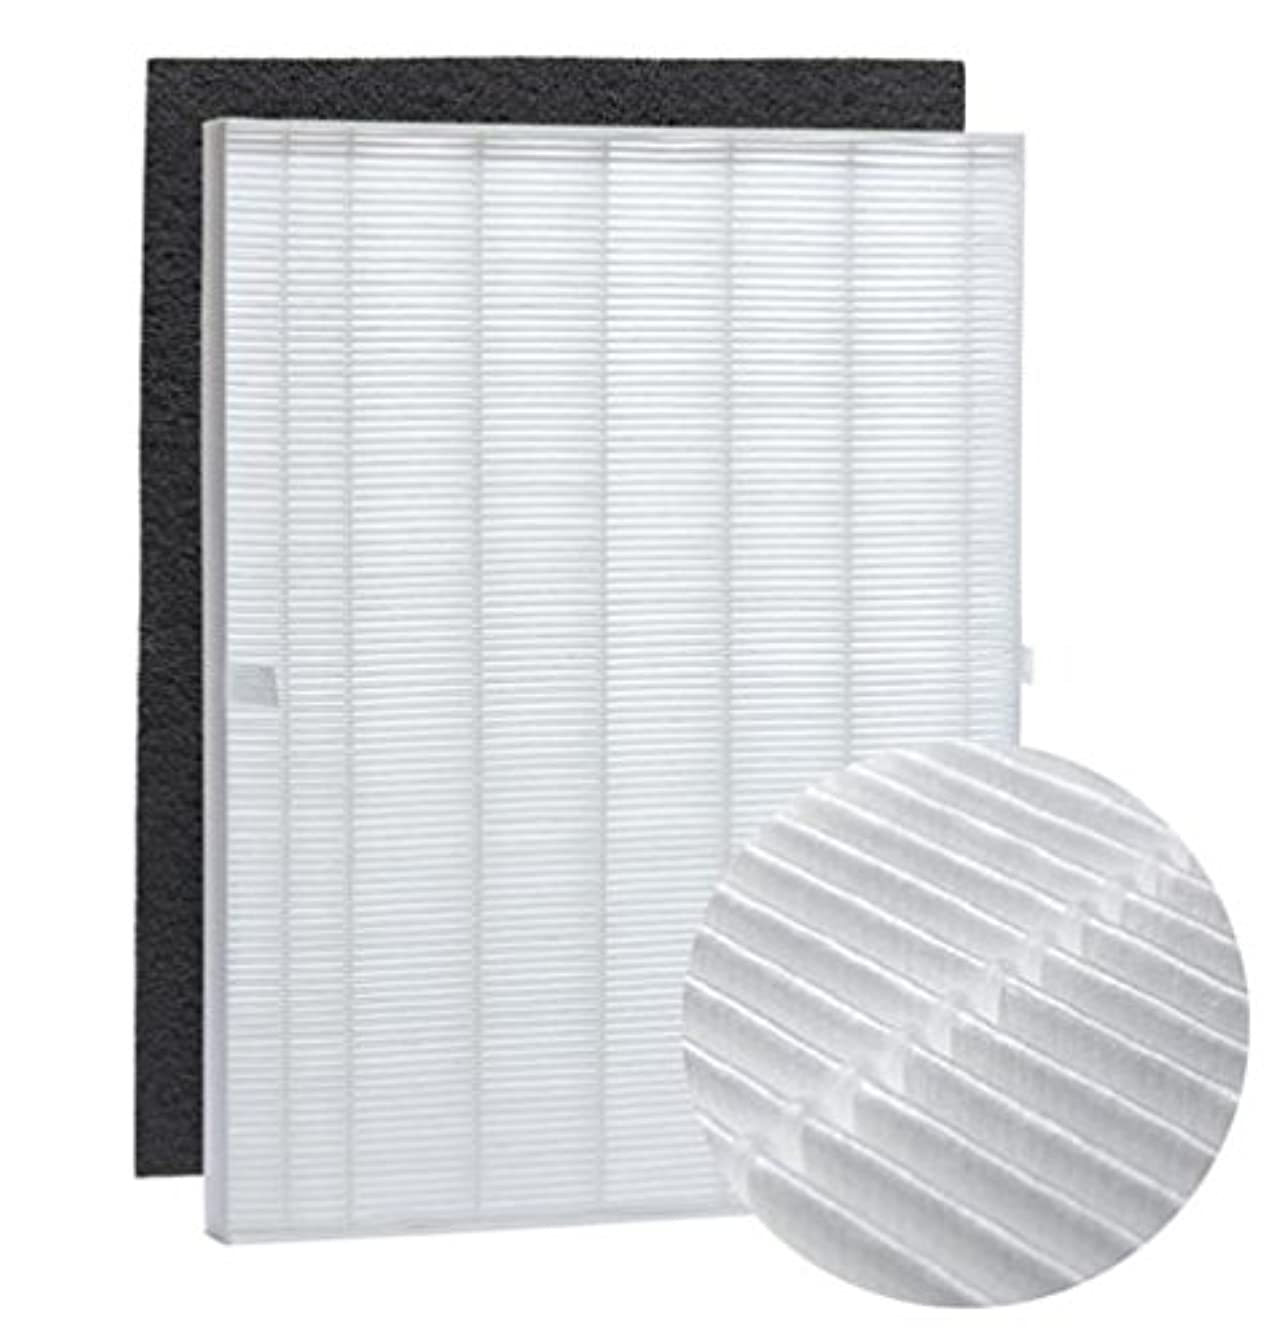 Nispira True HEPA Filter Replacement and Carbon Pre Filter Compatible with Winix 115115 Size 21. Fits Model WAC5300, WAC5500, WAC6300, 5000, 5000b, 5300, 5500